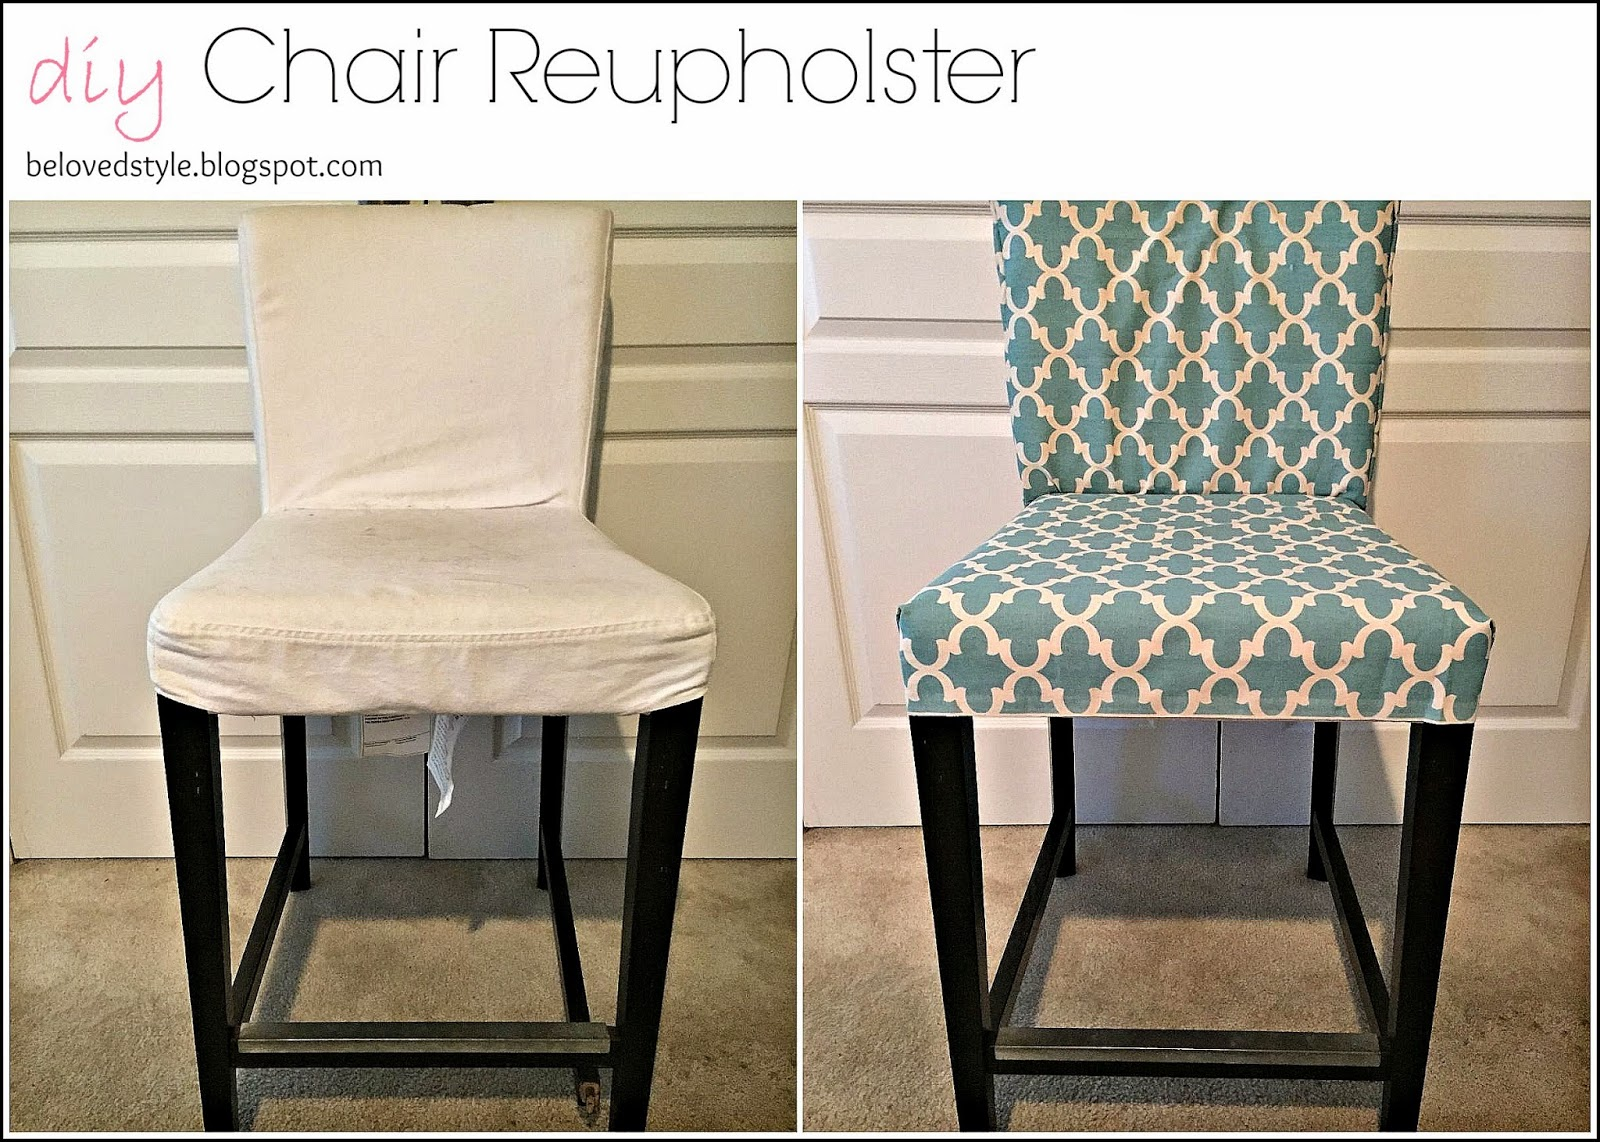 DIY Chair Reupholster: No Sew